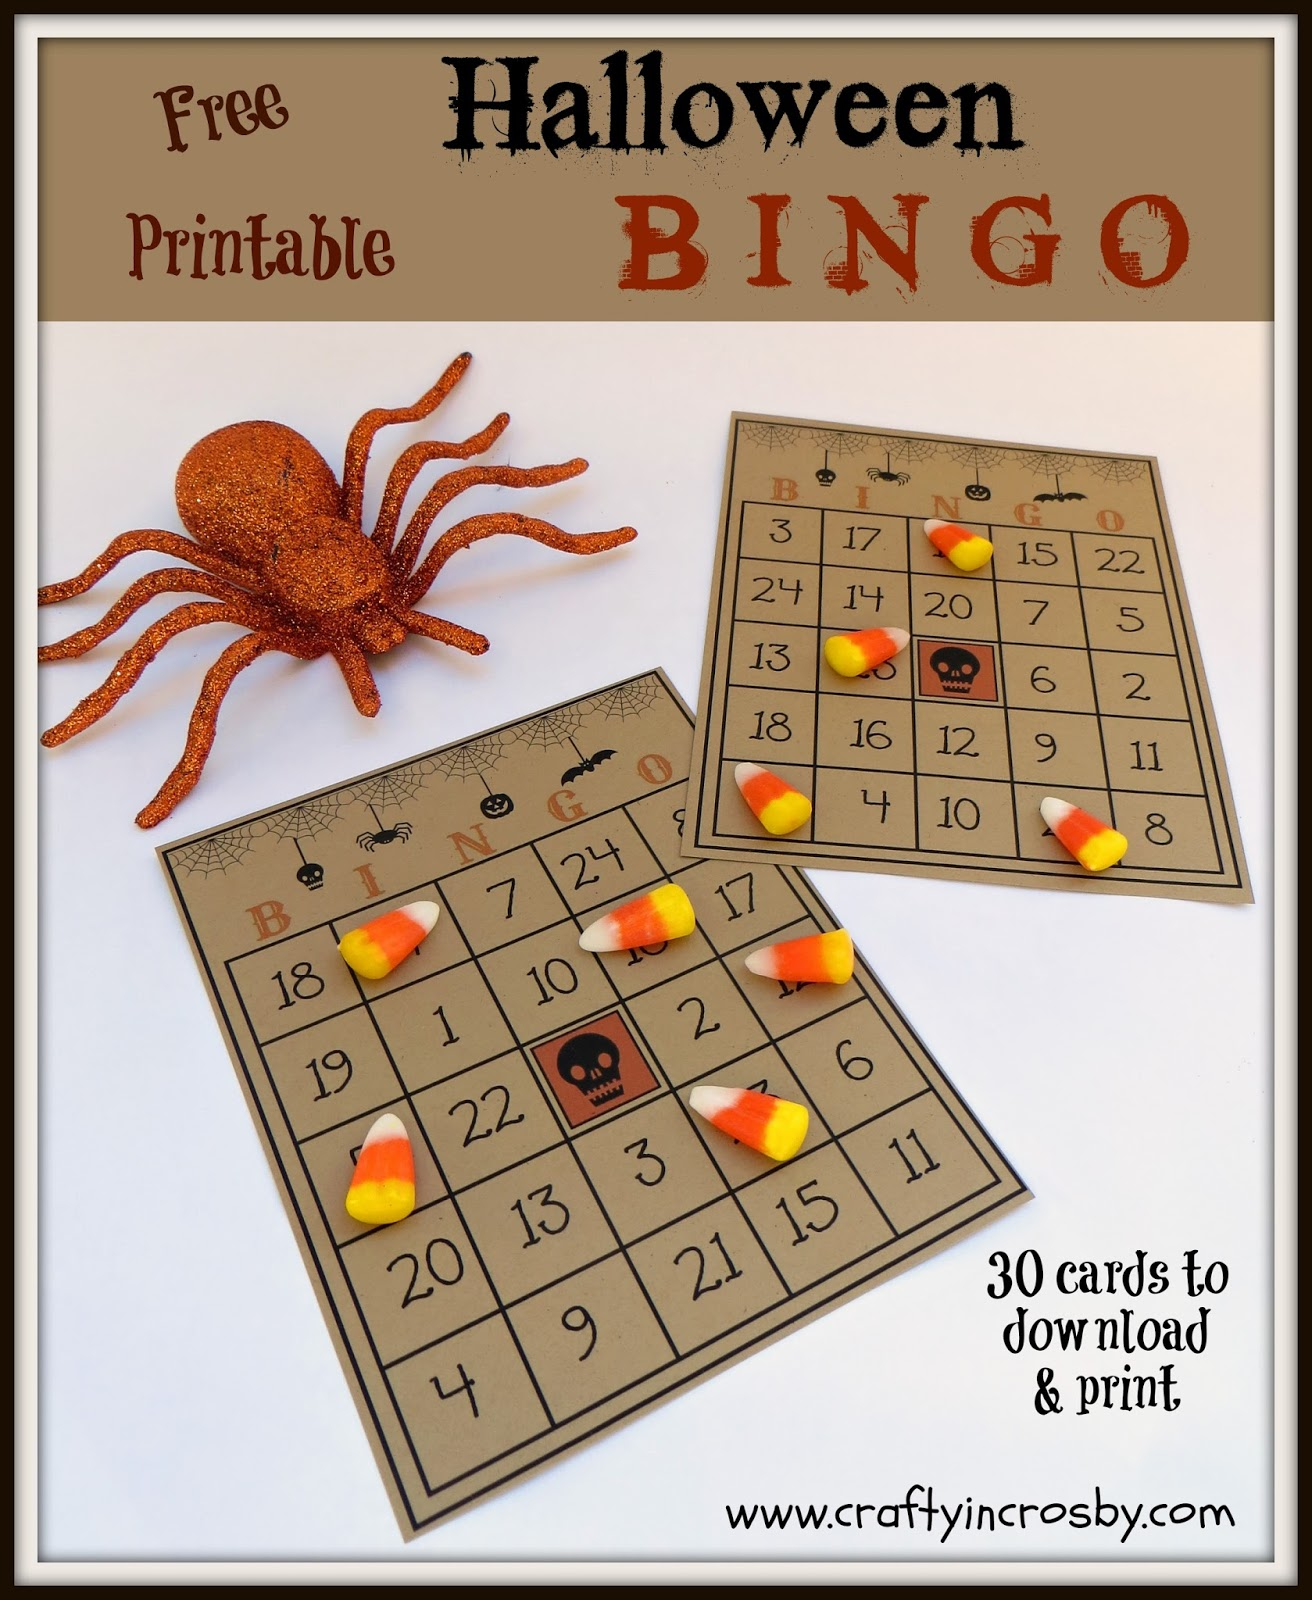 graphic about 25 Printable Halloween Bingo Cards identified as Cunning inside of Crosby: Absolutely free Printable Halloween Bingo Recreation